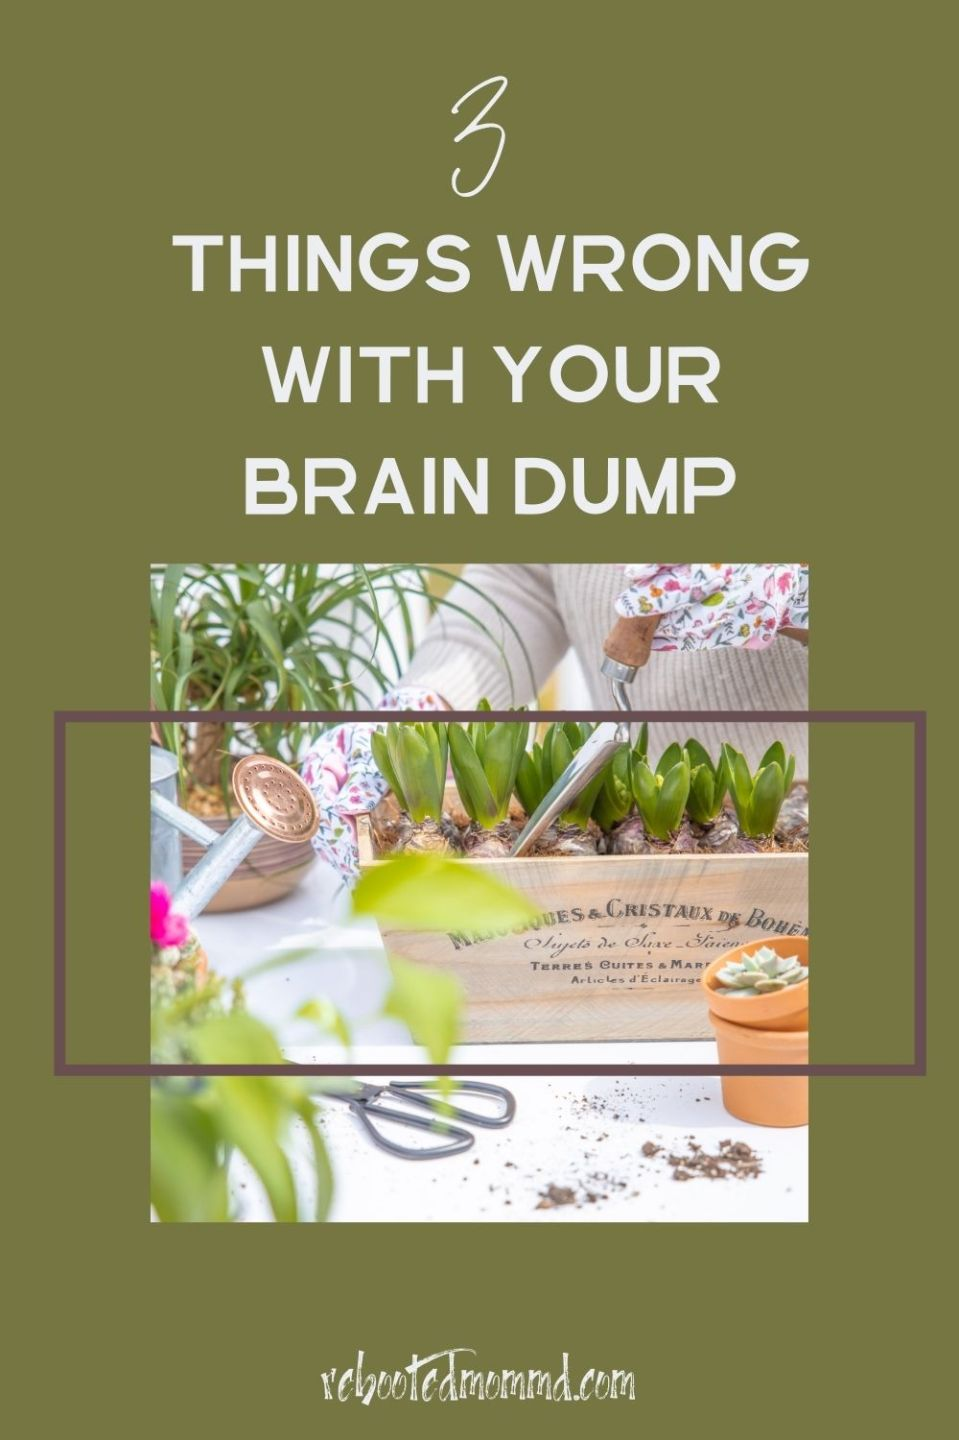 3 Things You Are Doing Wrong with Your Brain Dump